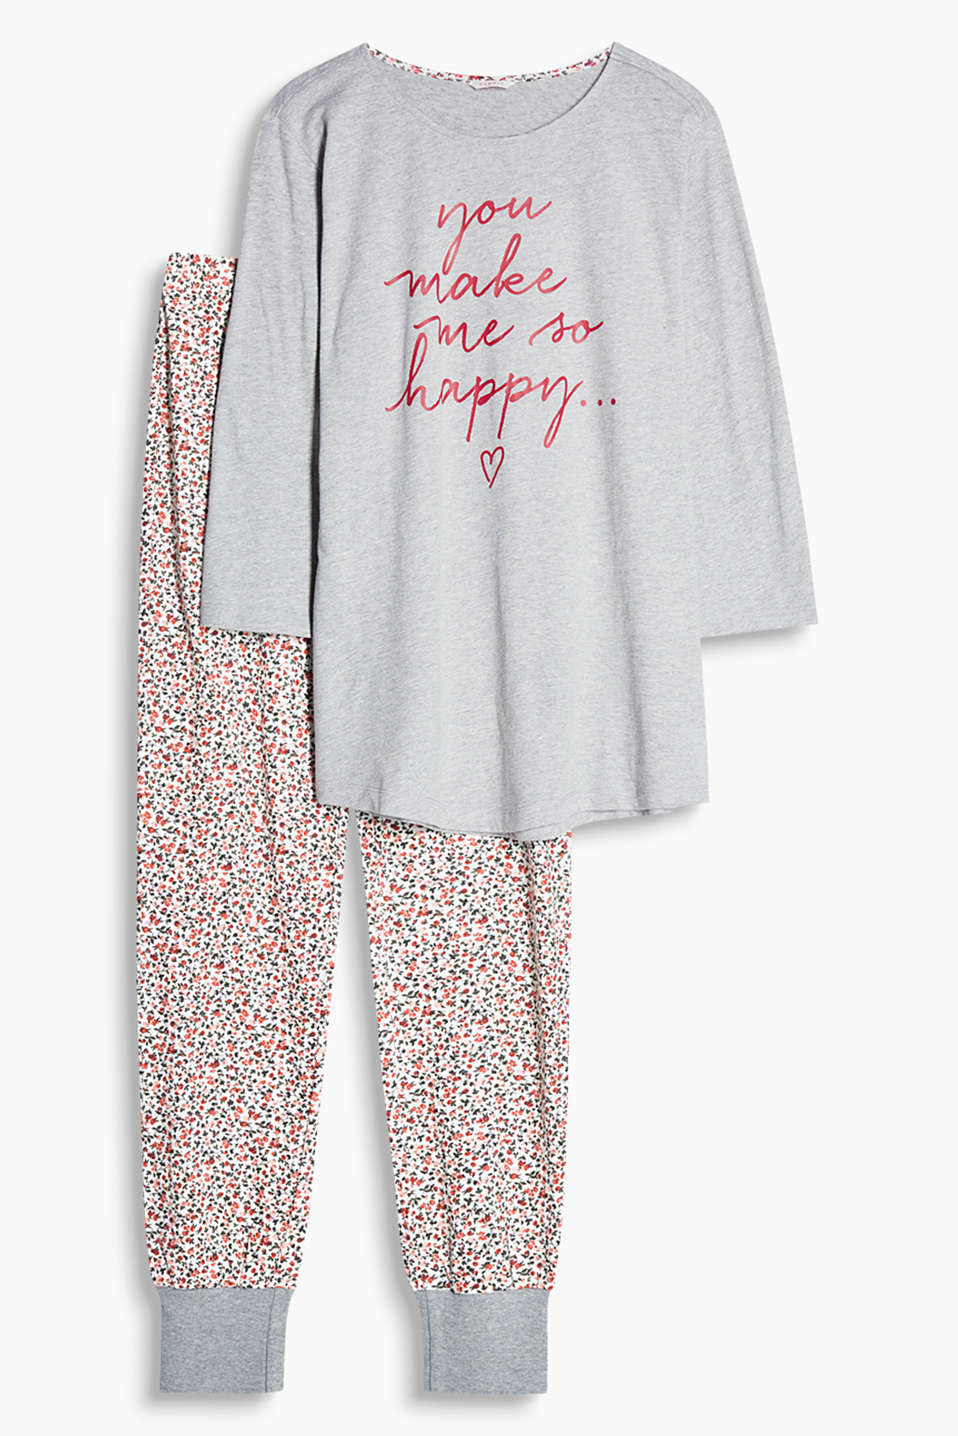 Soft blended cotton pyjama set with a floral and statement print